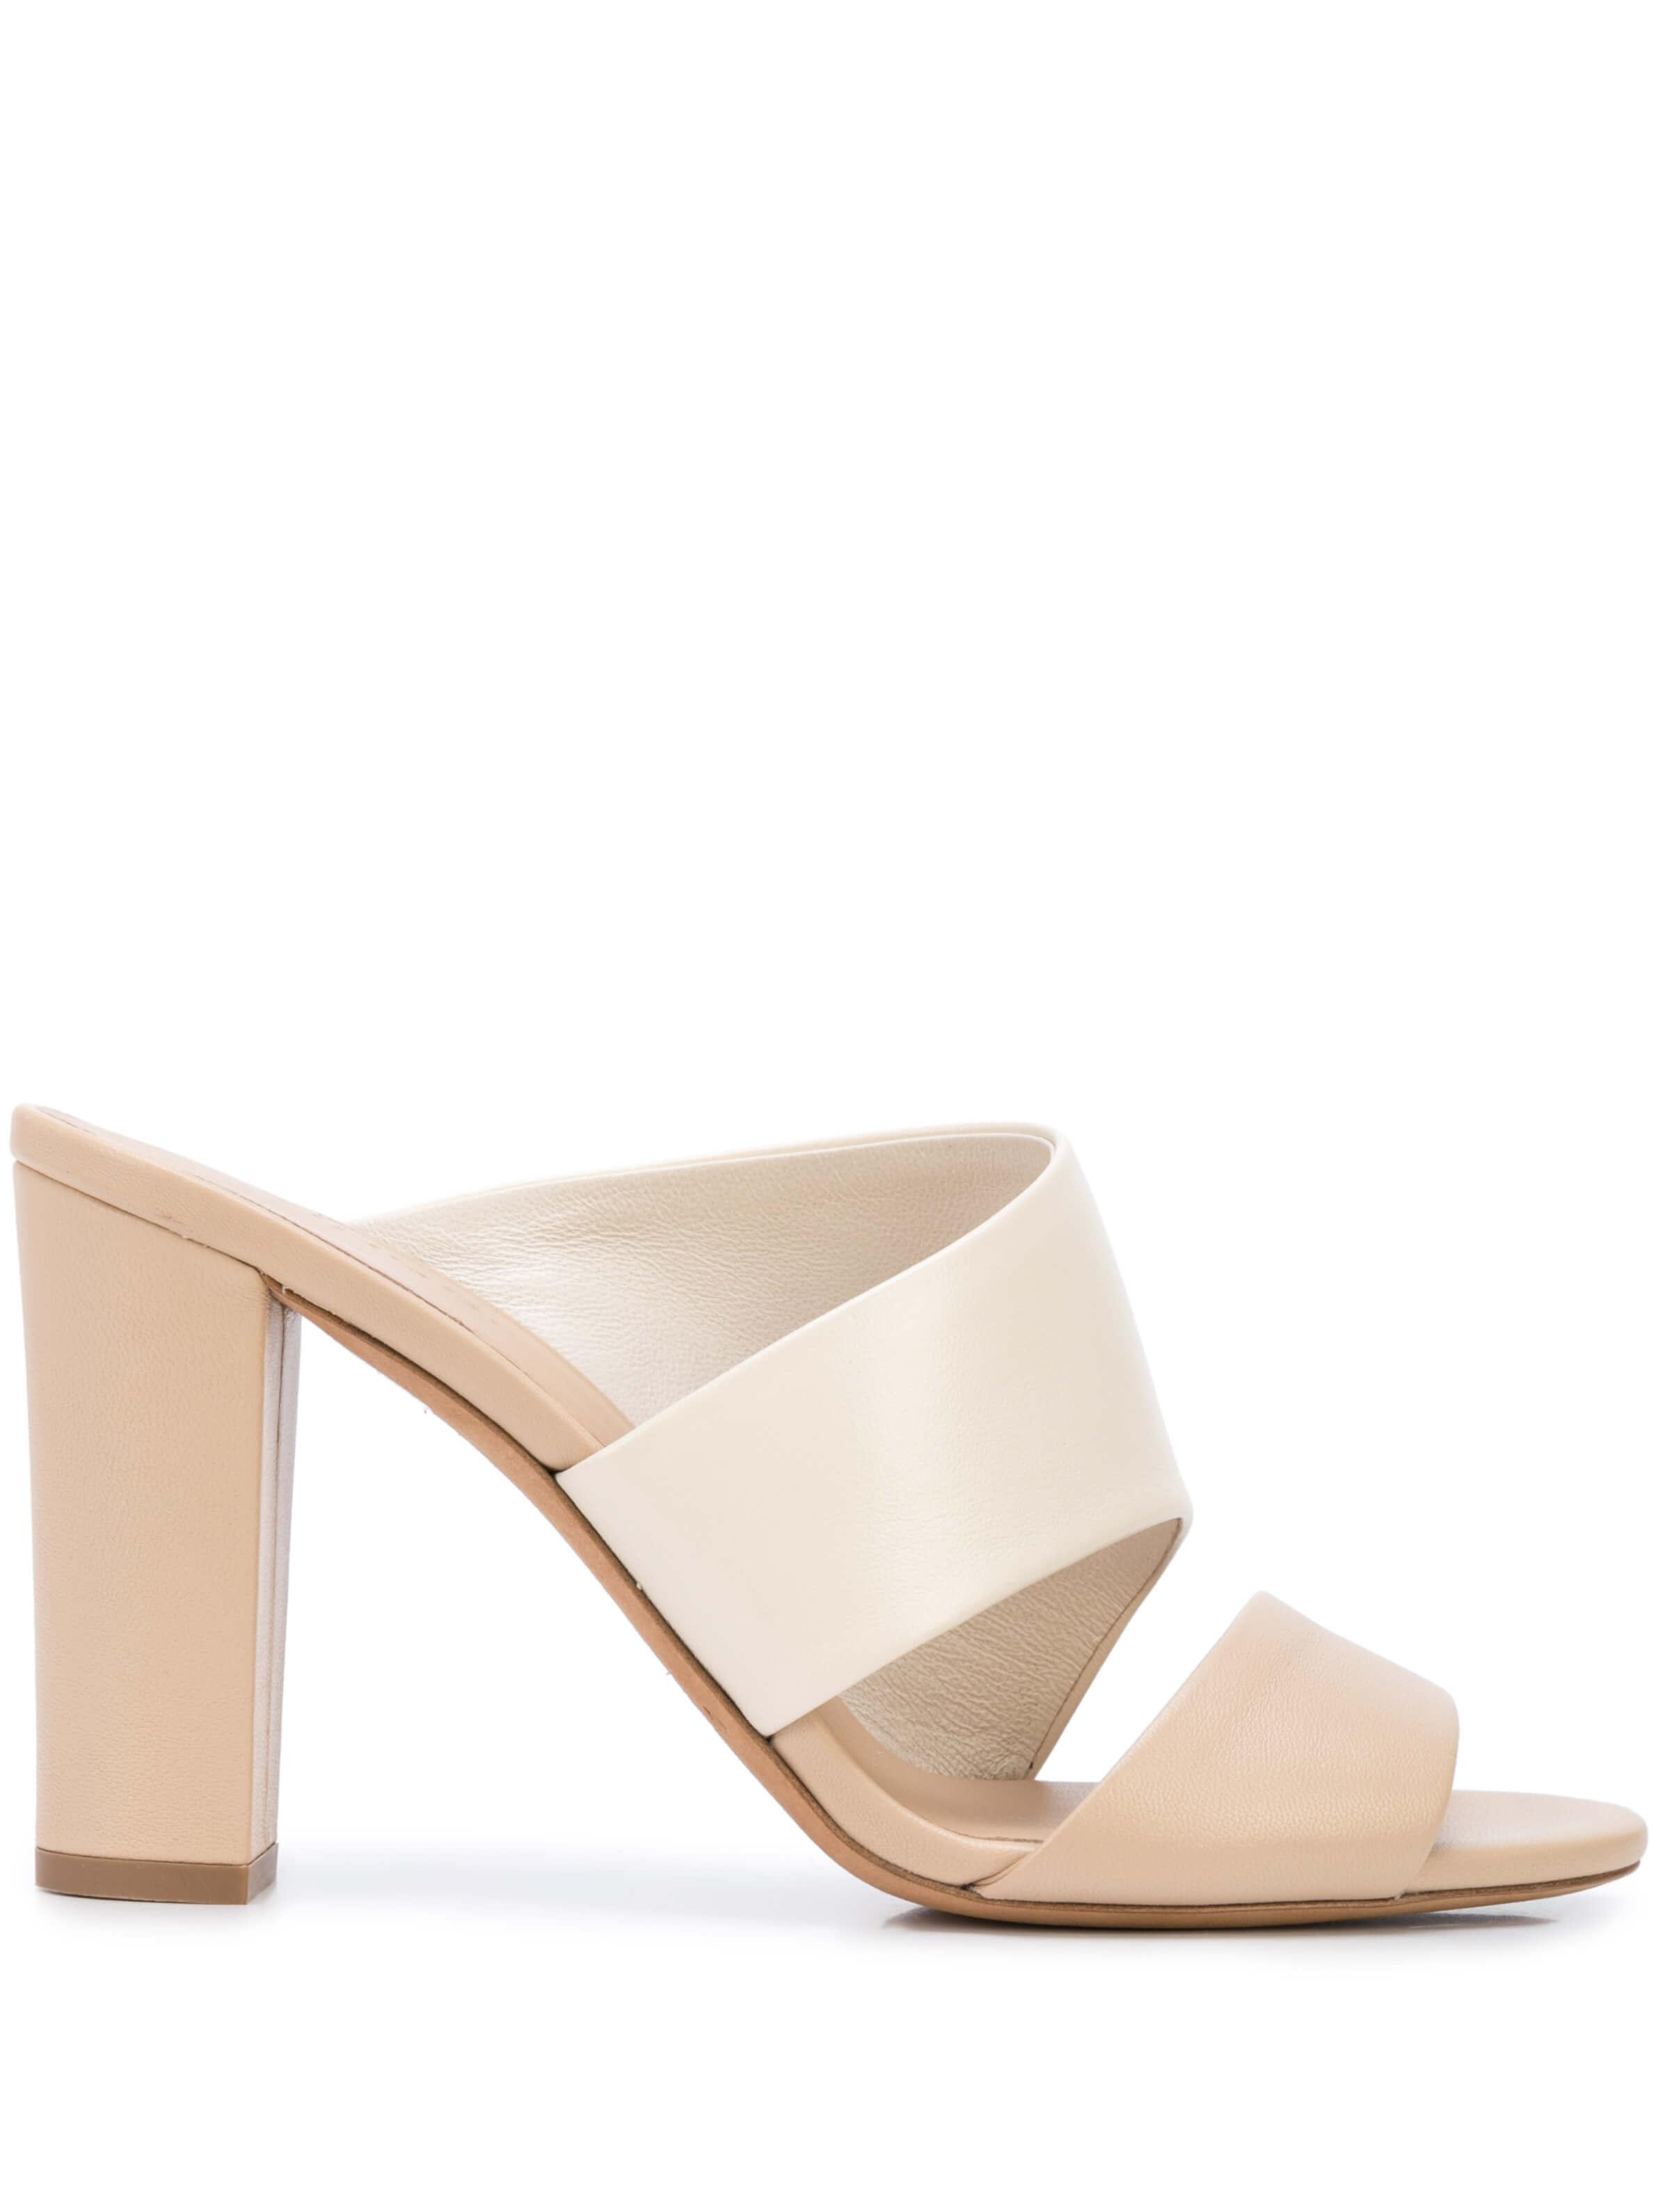 Hiro Two Tone Block Heel Slip On Sandal